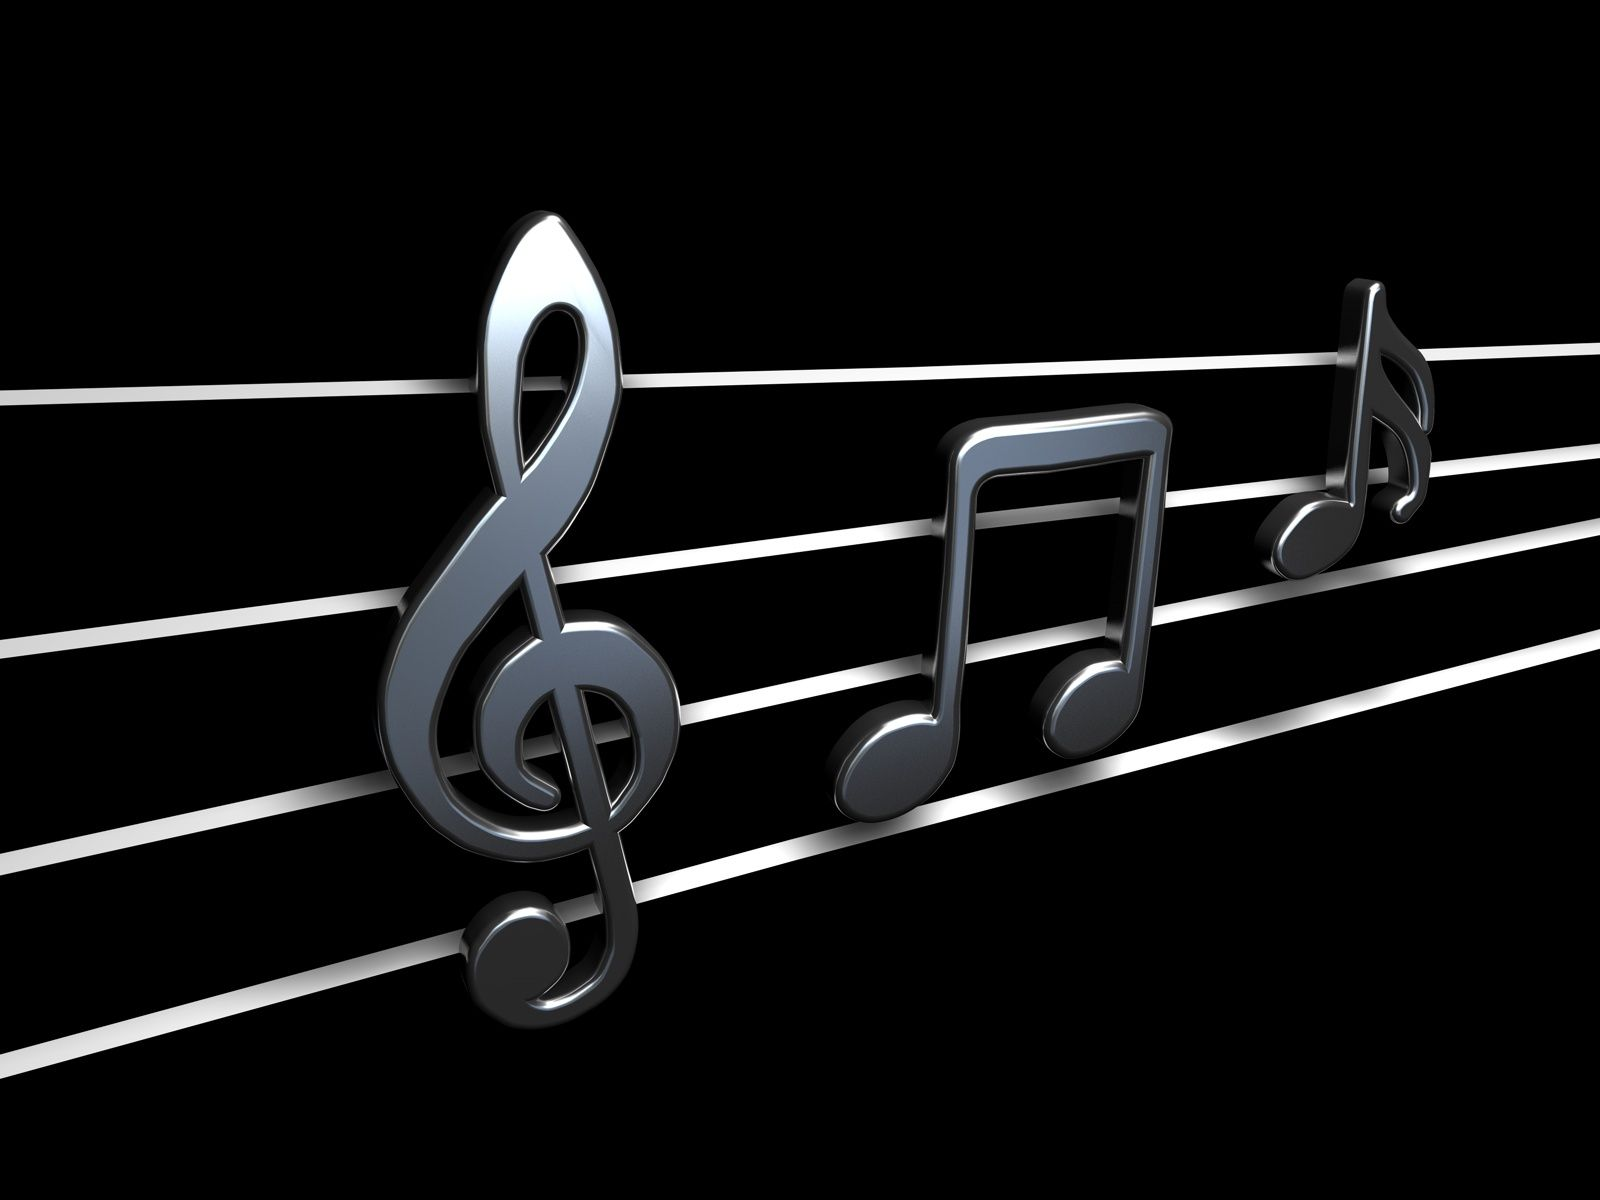 Music Notes 3d Abstract Misic Notes Music Wallpaper Wall9 Com 3d Wallpaper Music Music Wallpaper Music Notes